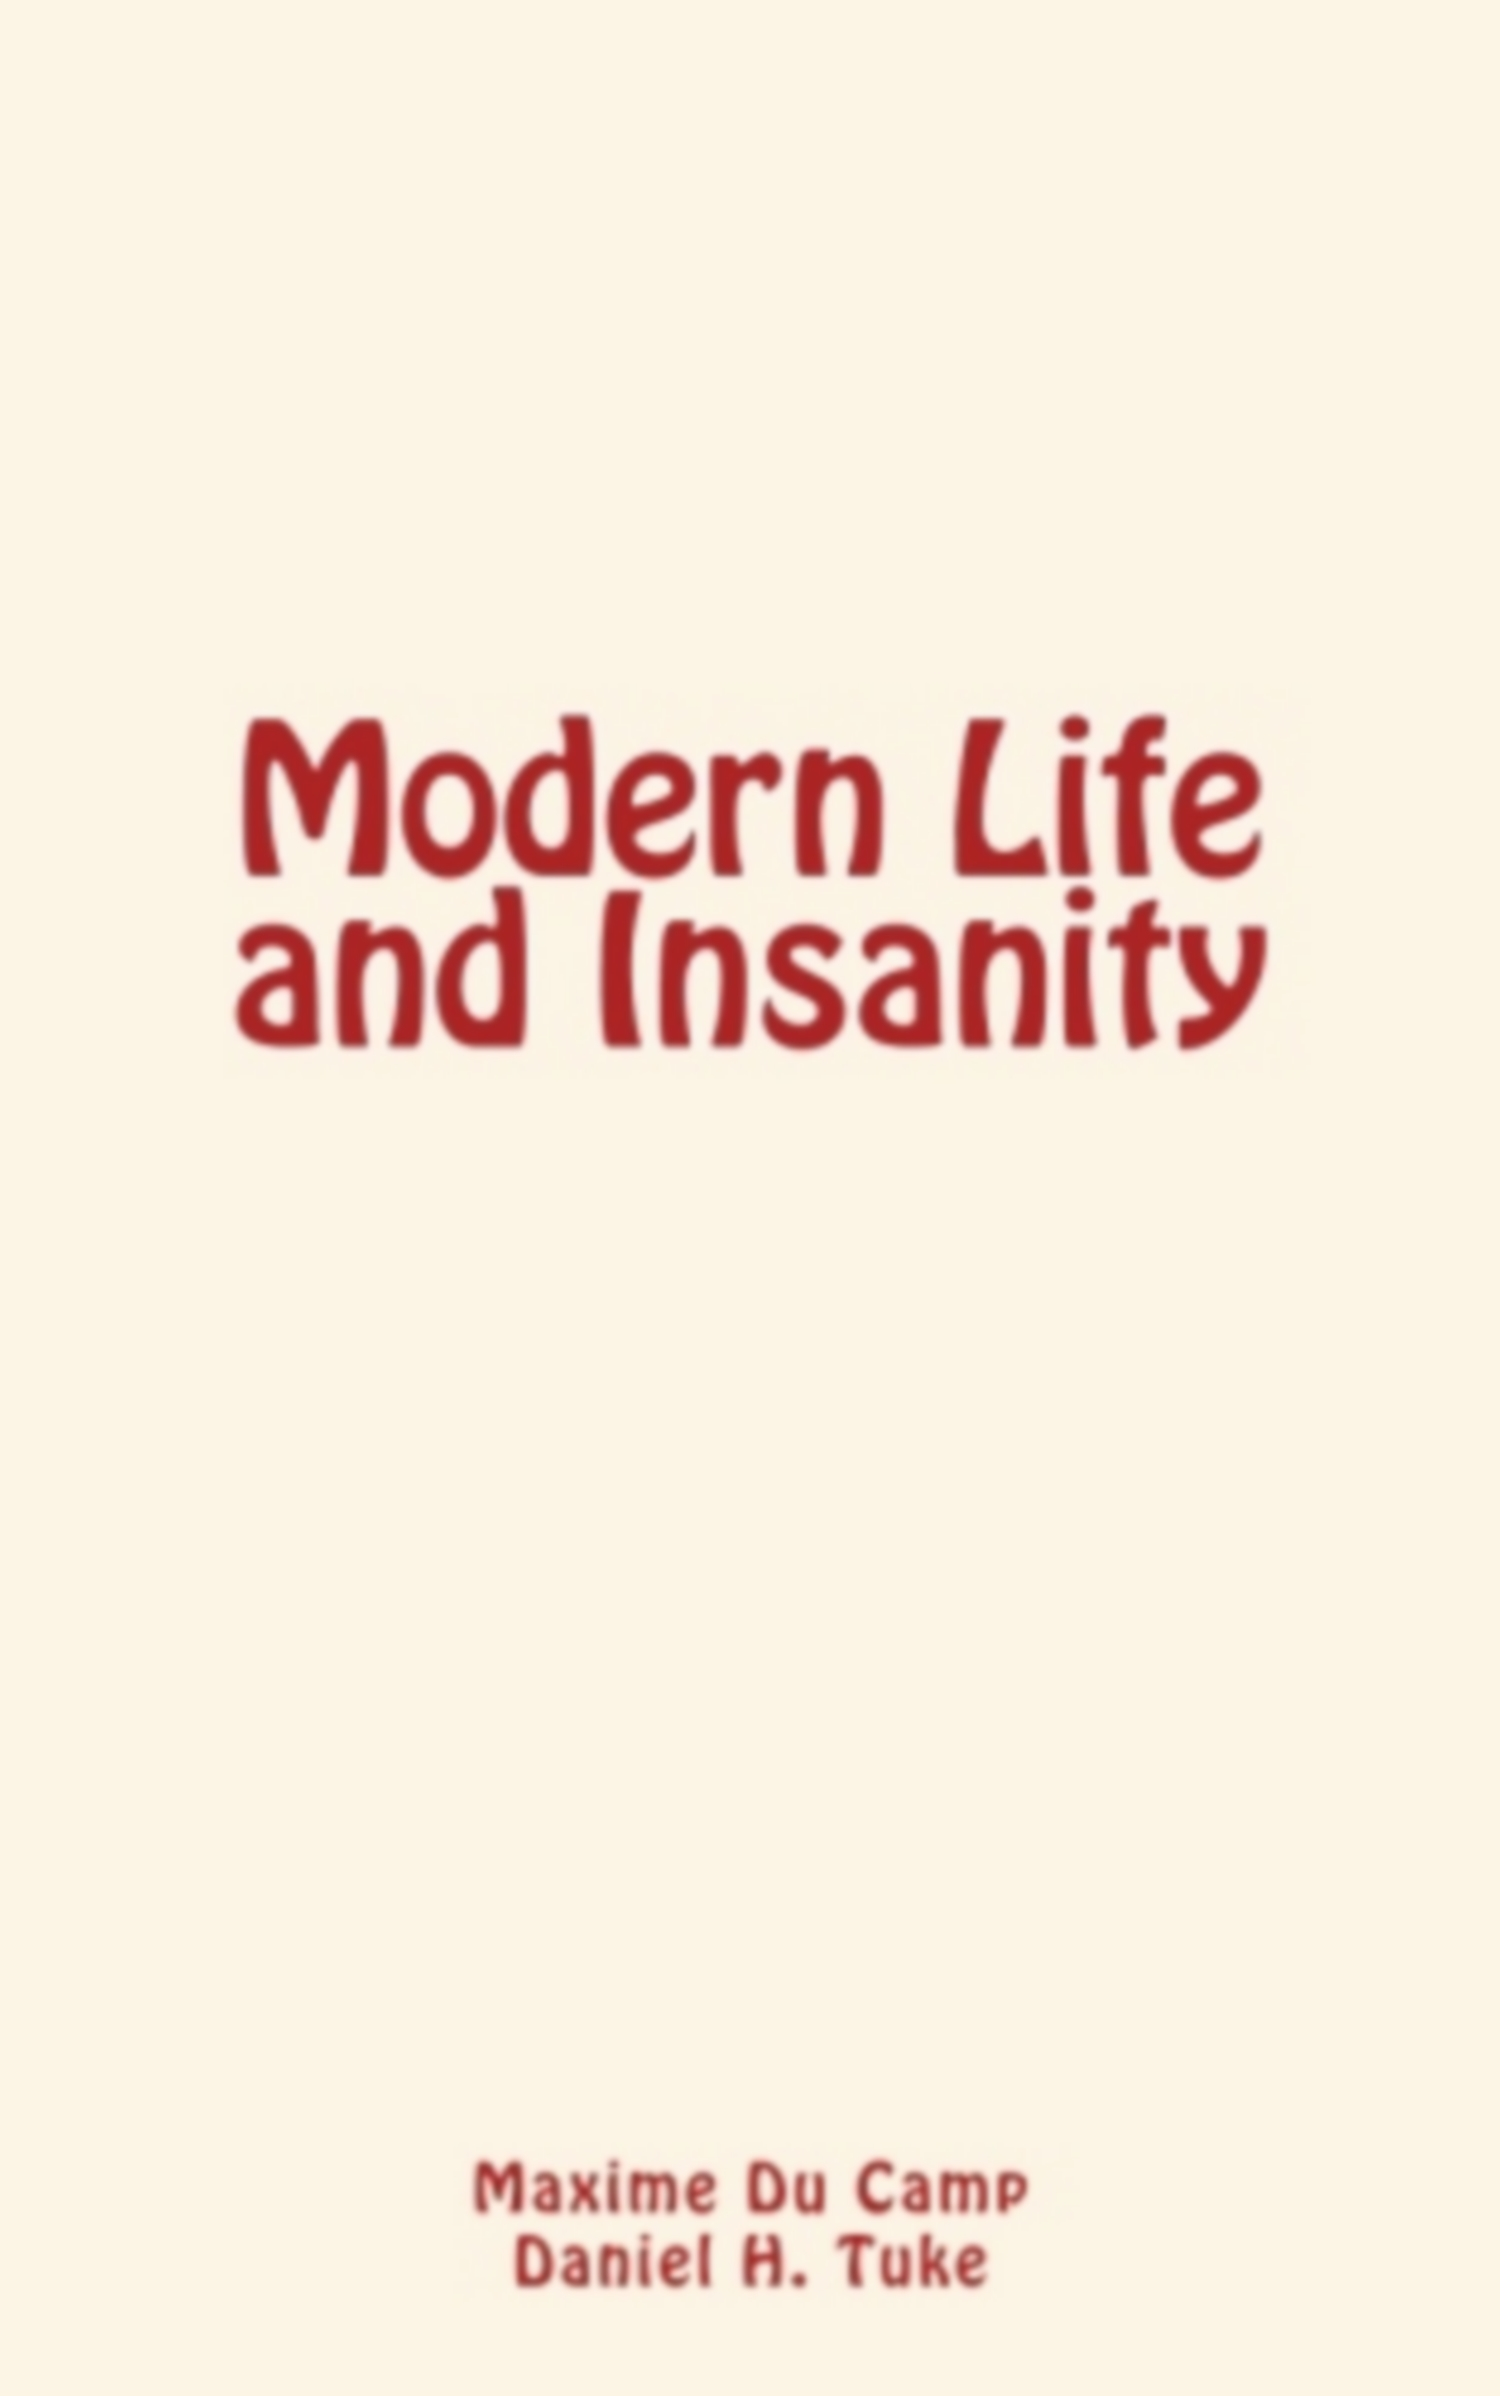 Modern Life and Insanity